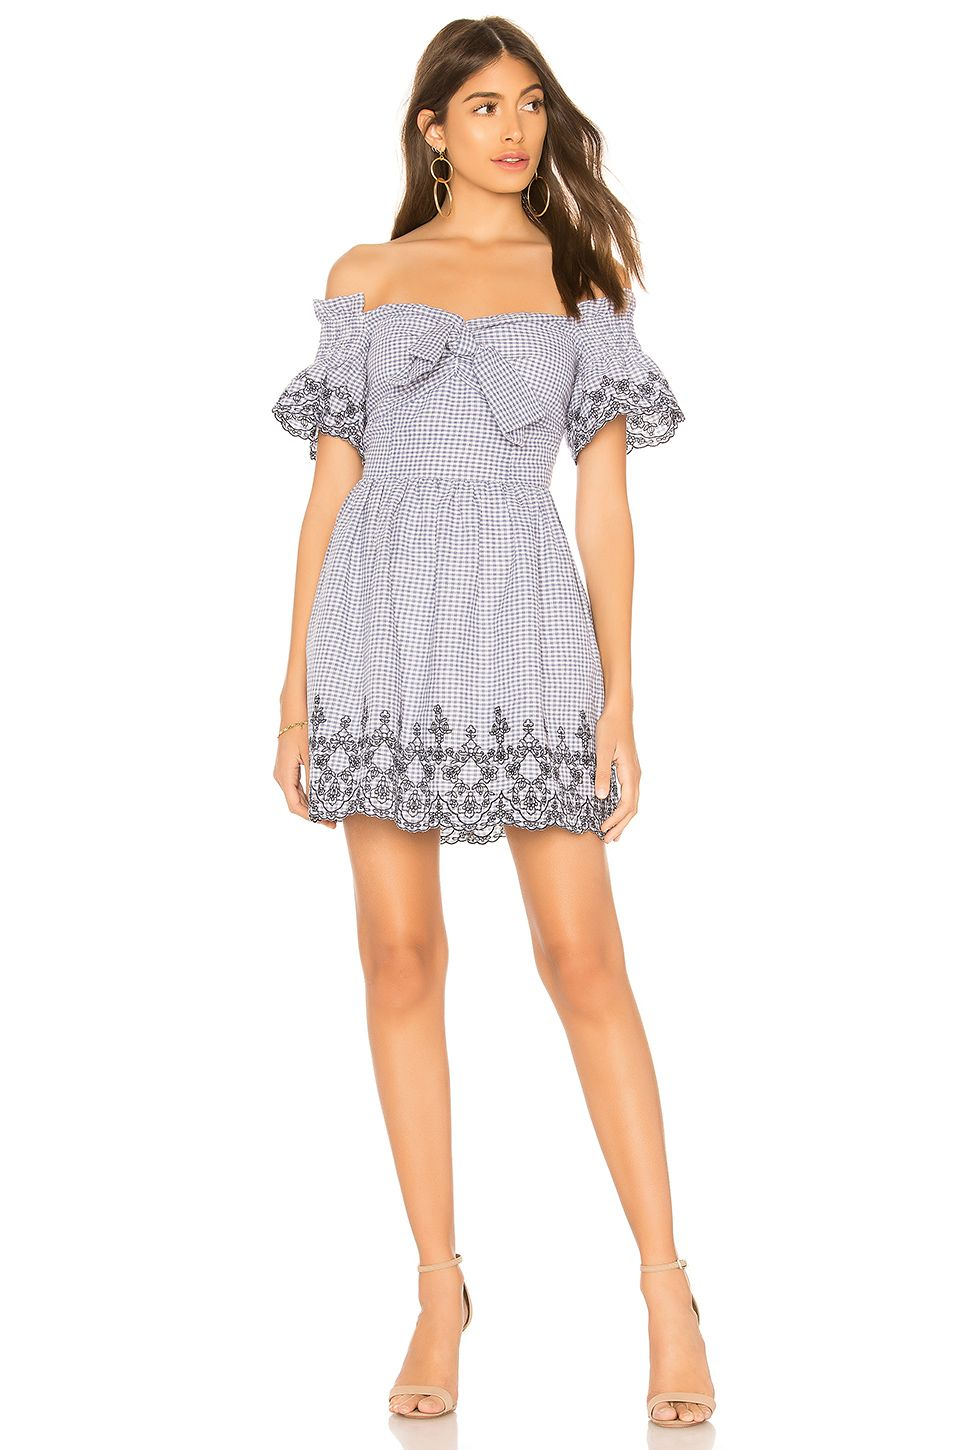 74976d591f J.O.A. Off The Shoulder Embroidered Dress in Blue Gingham | Sewing ...